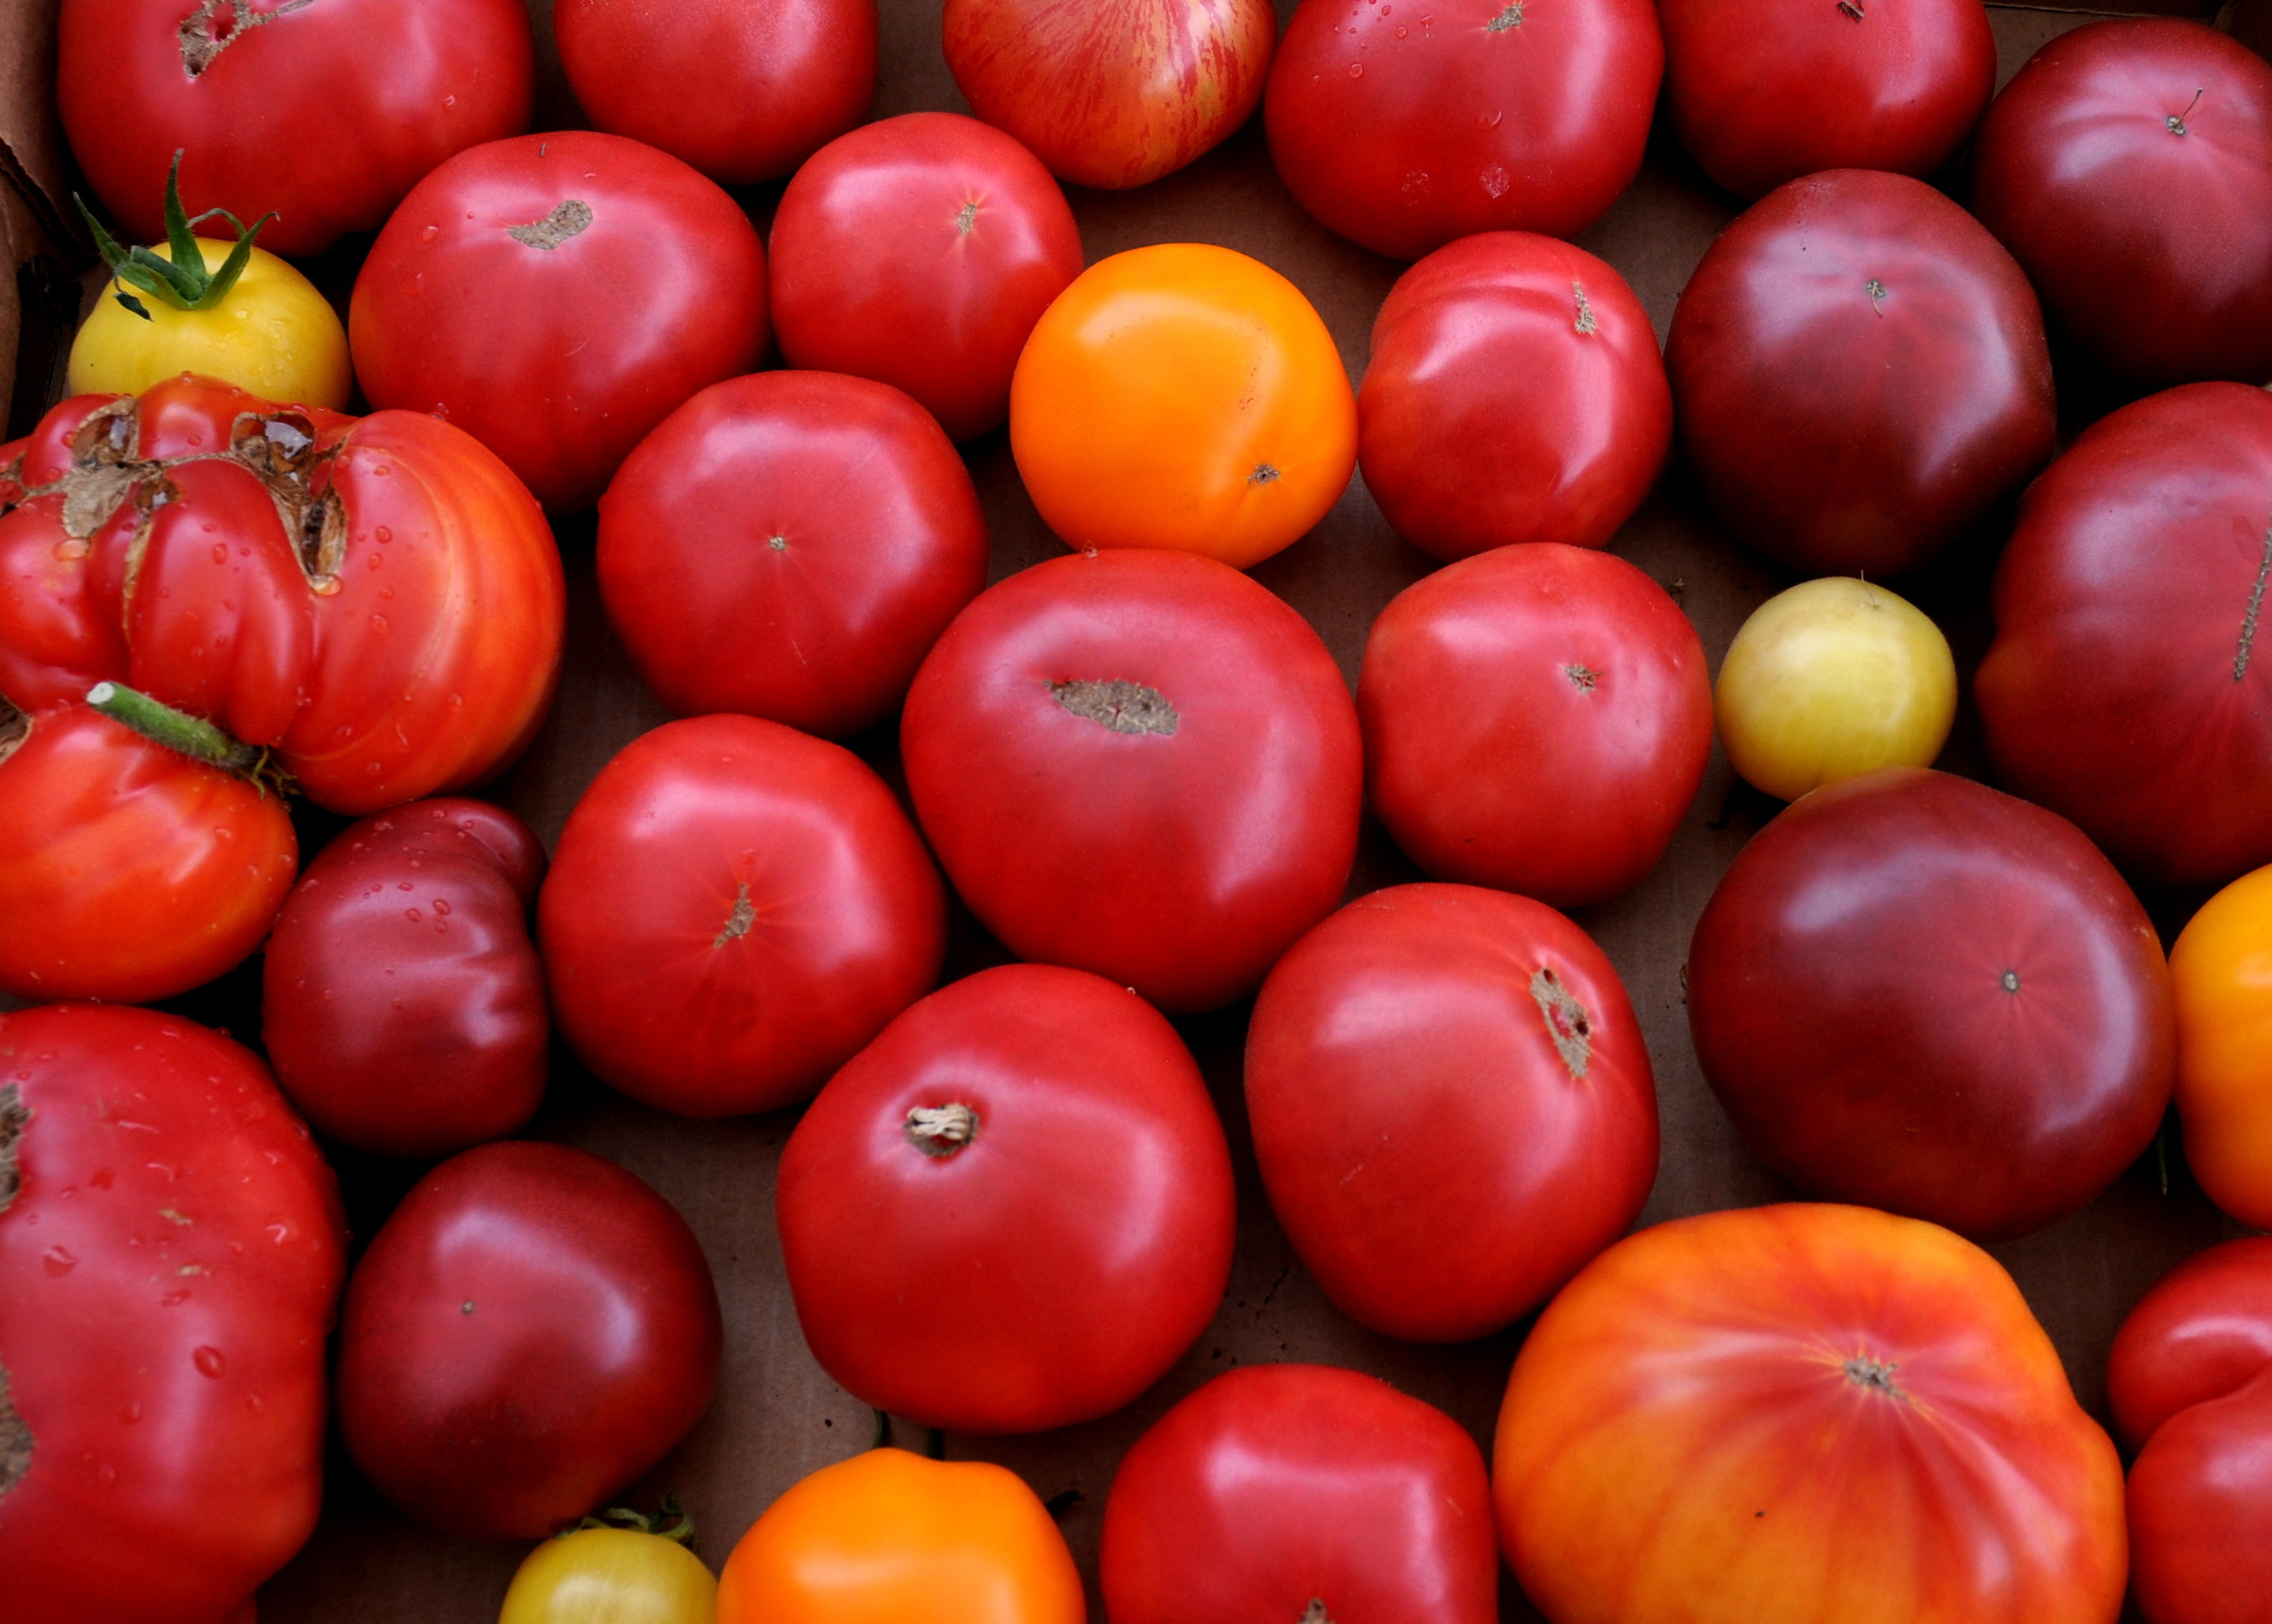 Heirloom tomatoes from Around The Table Farm. Photo copyright 2014 by Zachary D. Lyons.